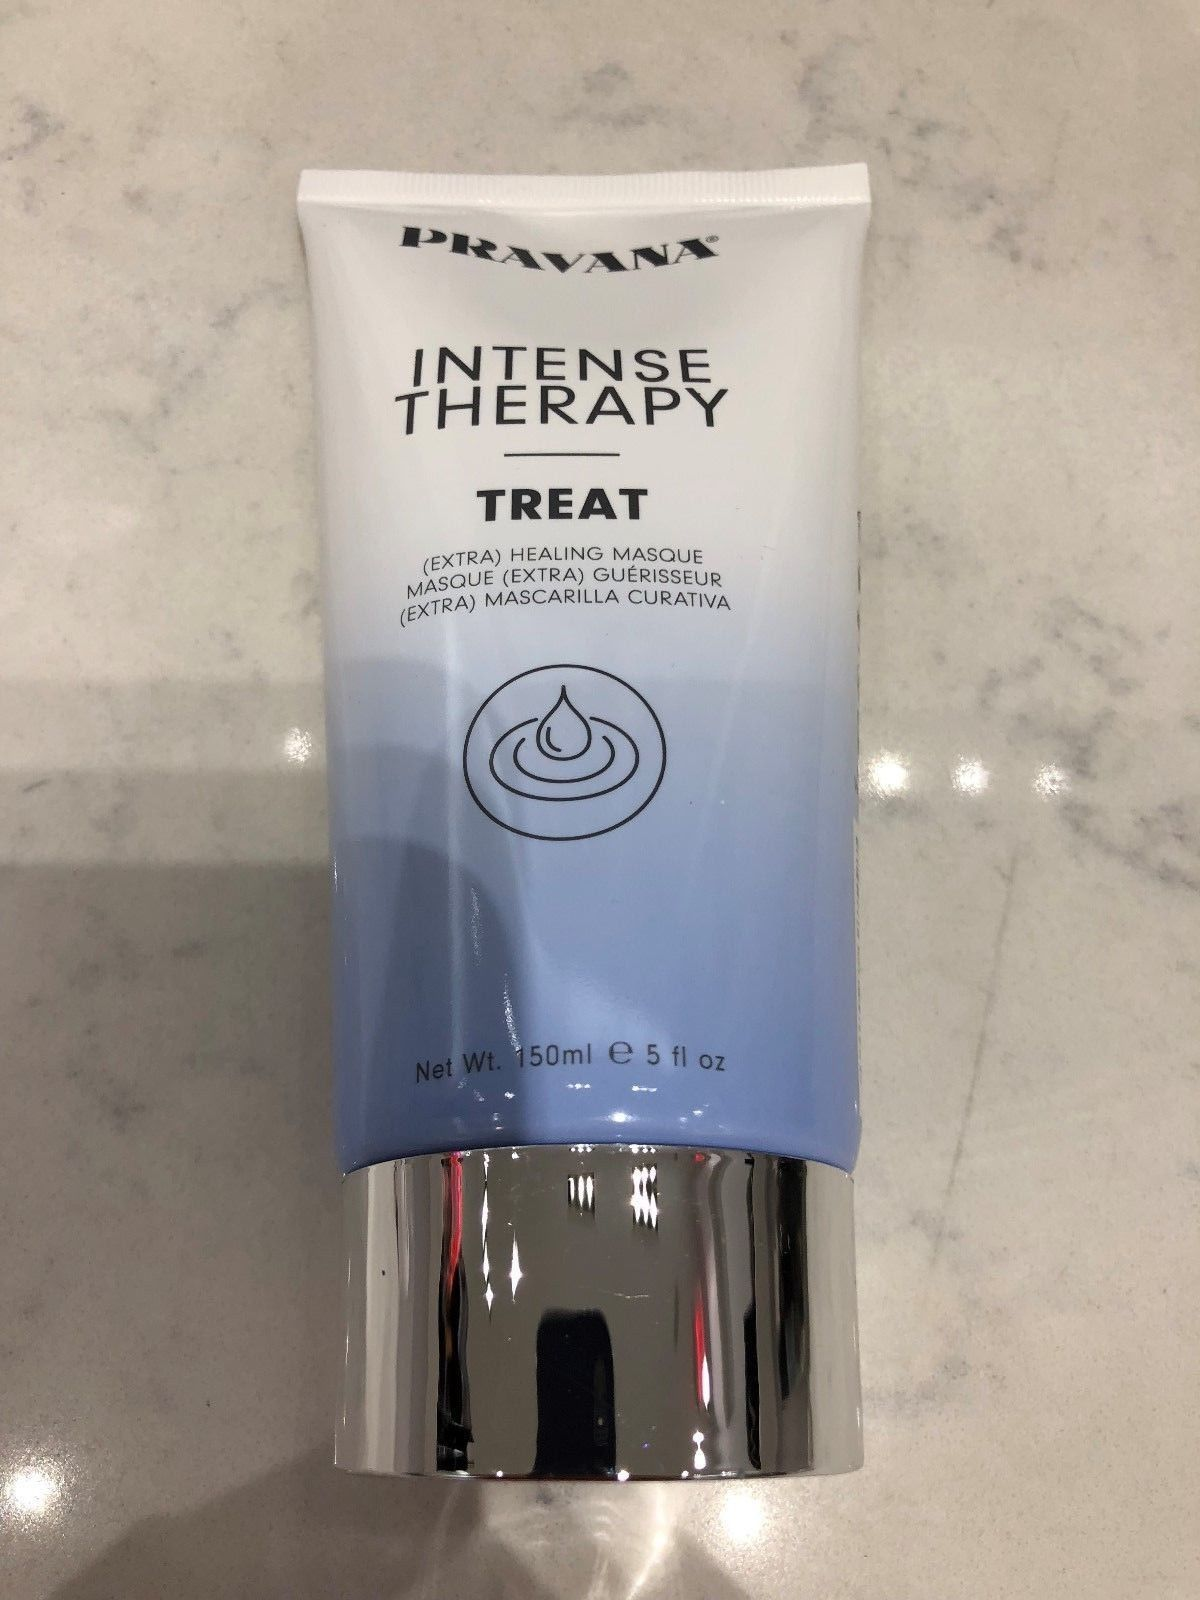 Primary image for Pravana Intense Therapy Treat Extra Healing Masque 5oz